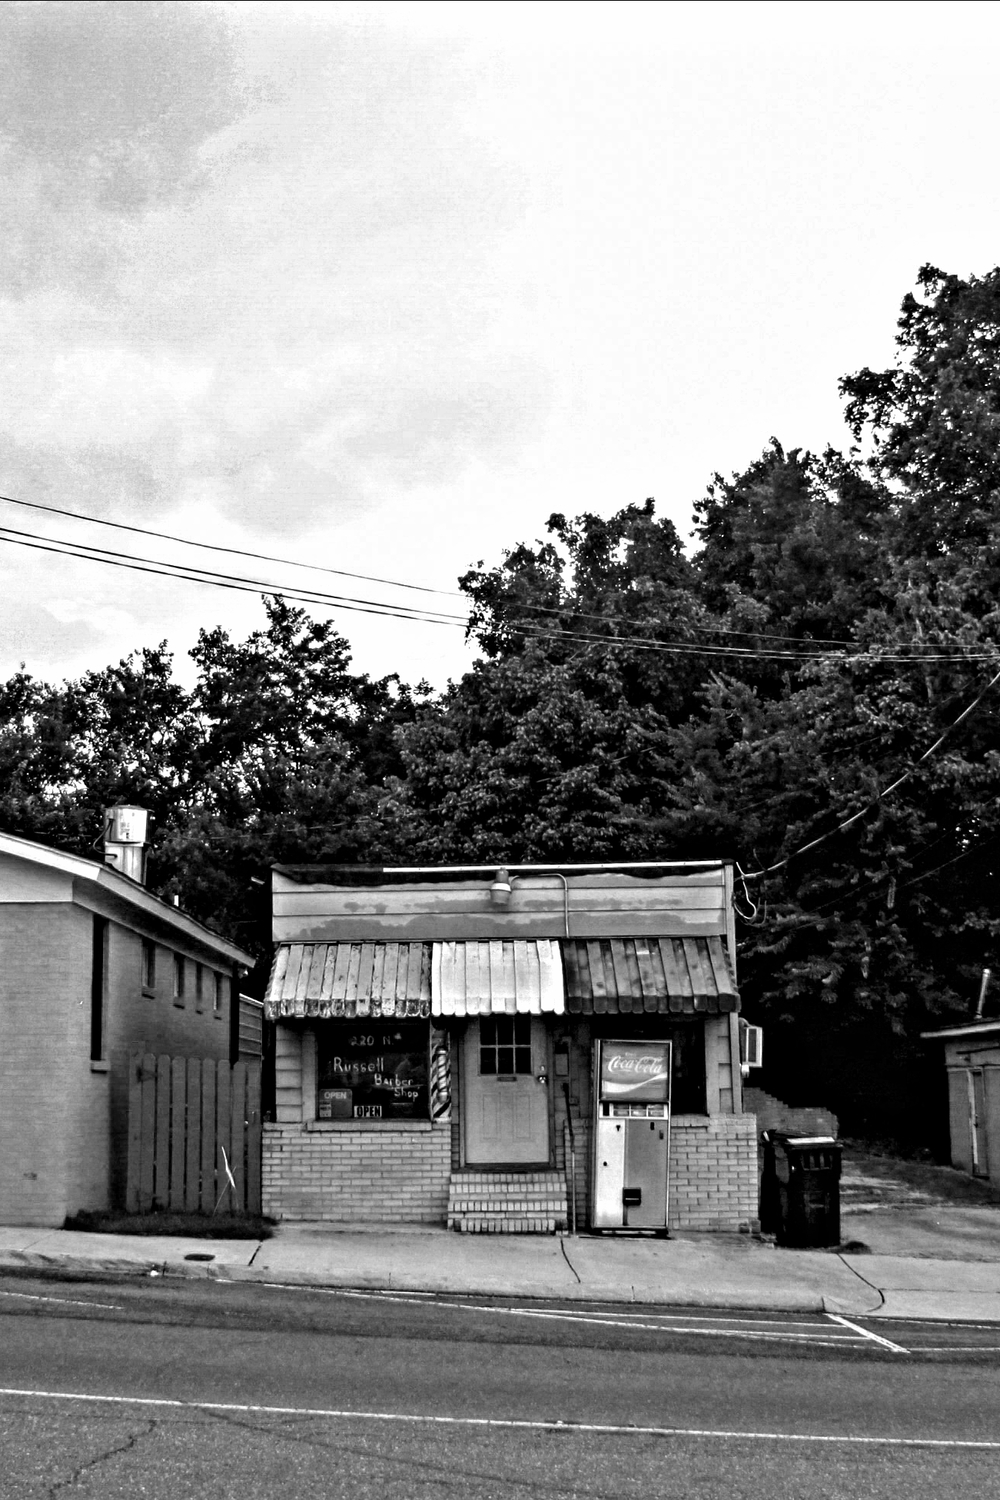 An abandoned barber shop in Holly Springs, MS.